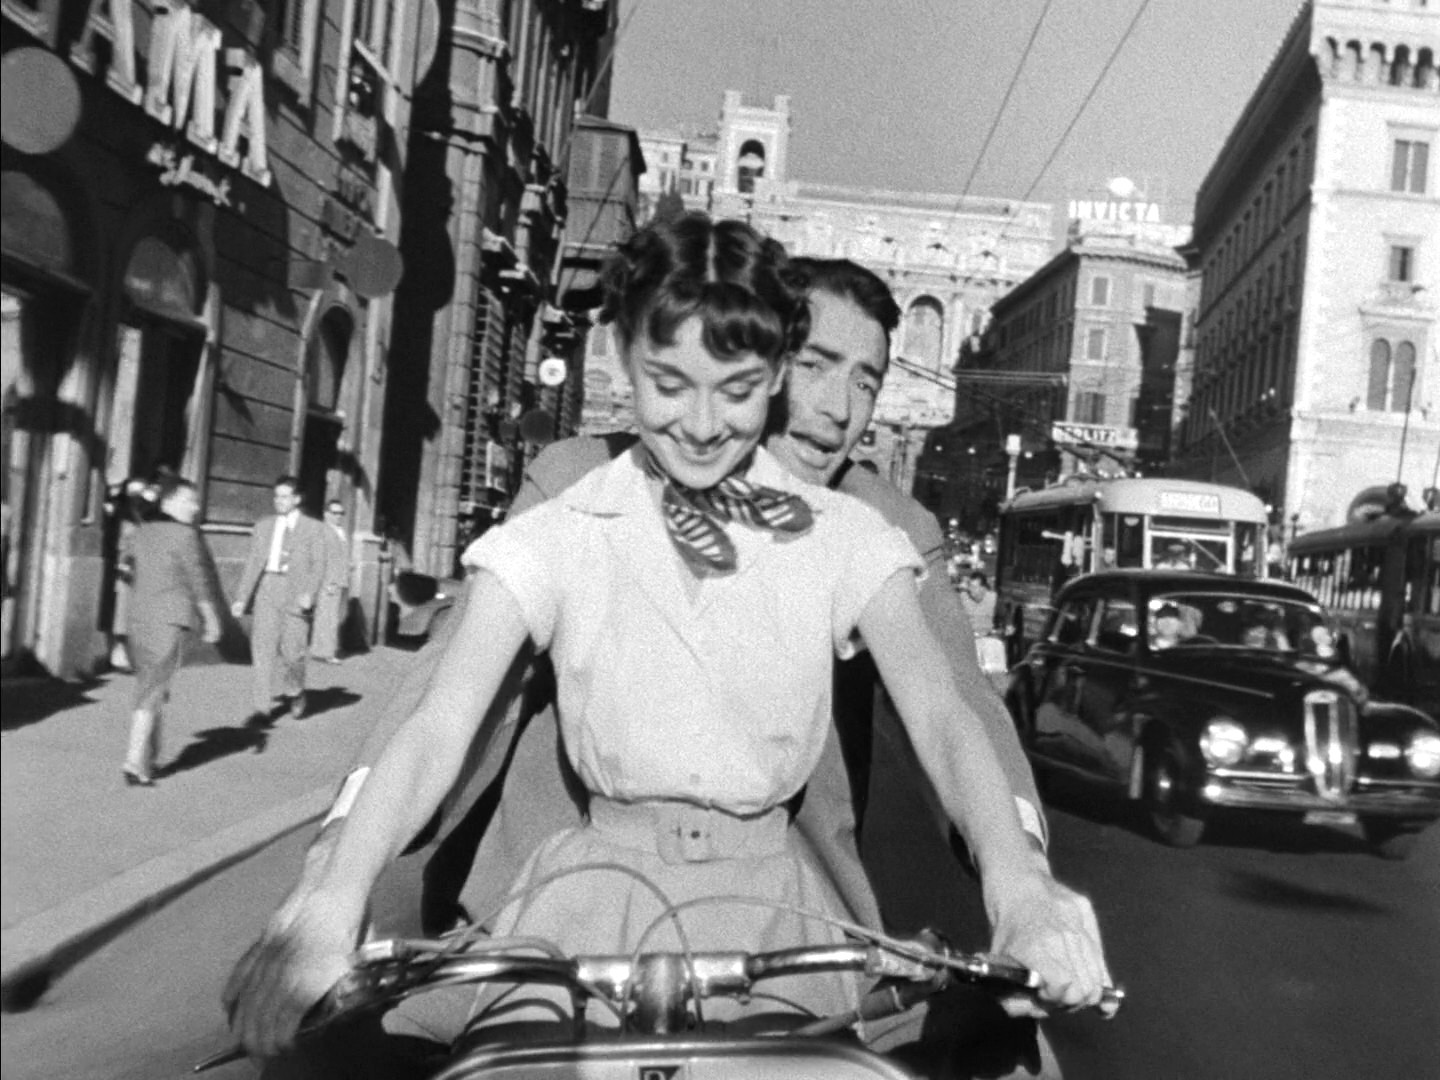 Dosiero:Audrey Hepburn and Gregory Peck on Vespa in Roman Holiday trailer.jpg